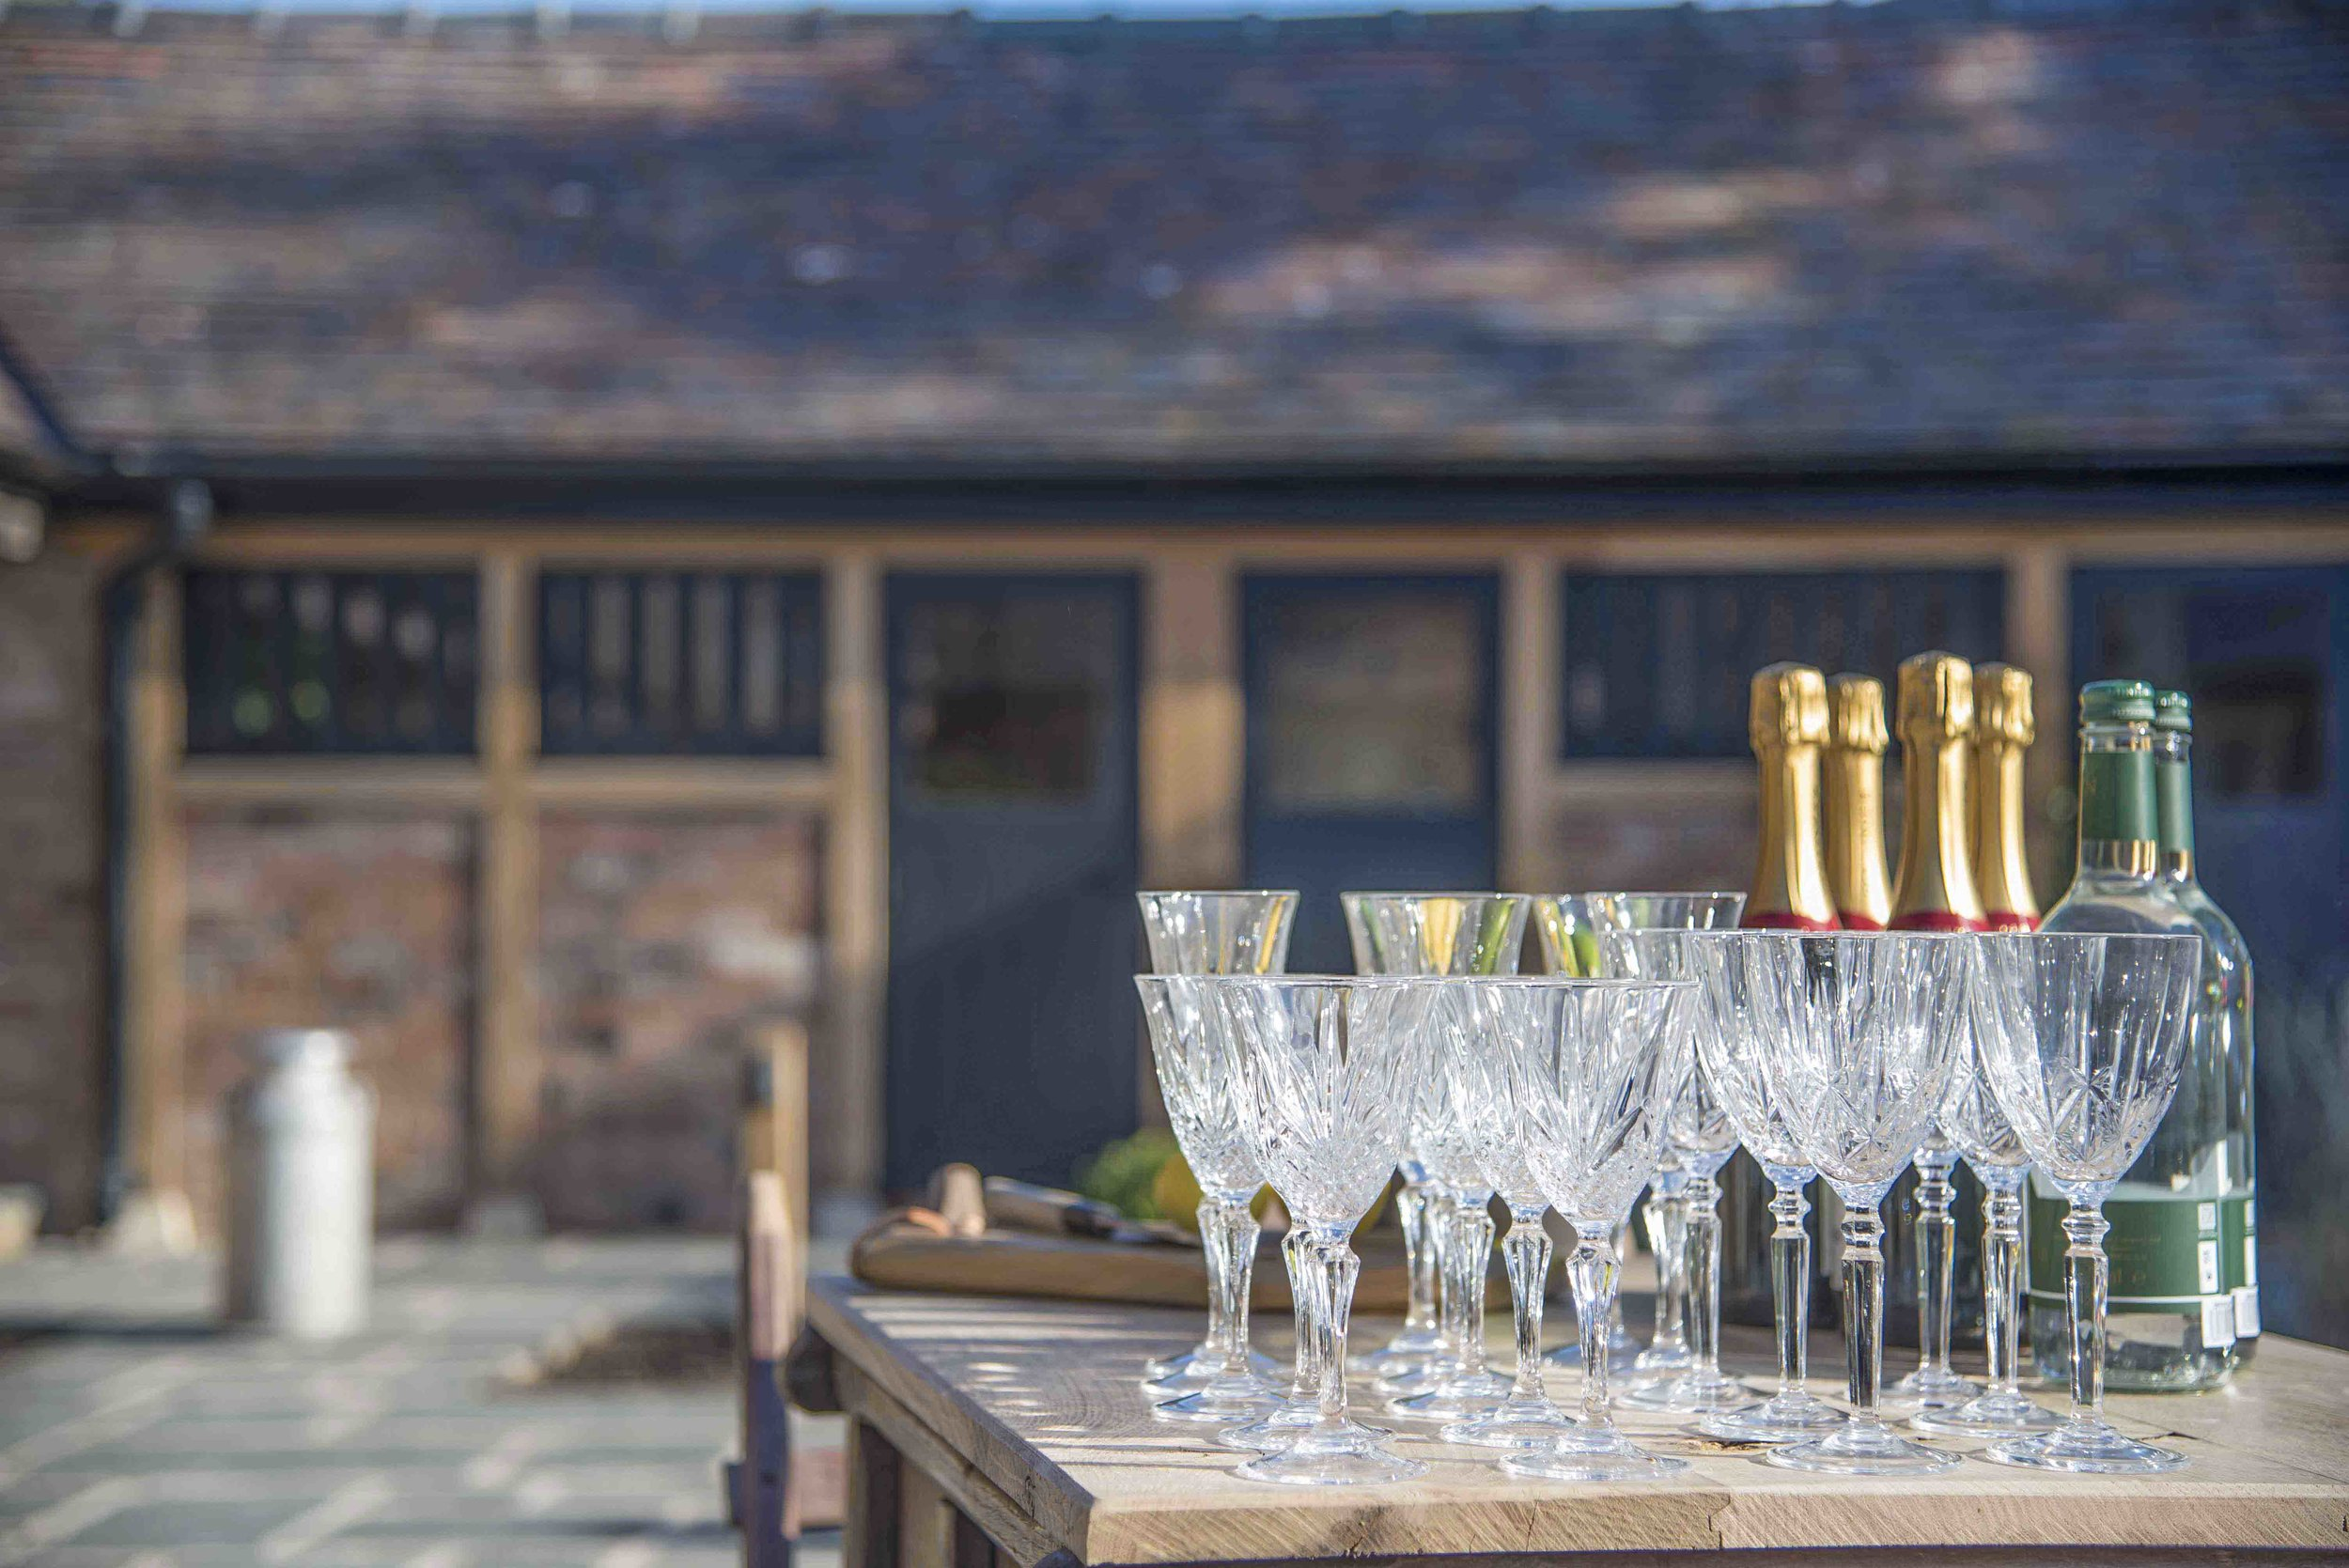 Champagne Glasses and bottles at Barns and Yard Malvern sharper.jpg